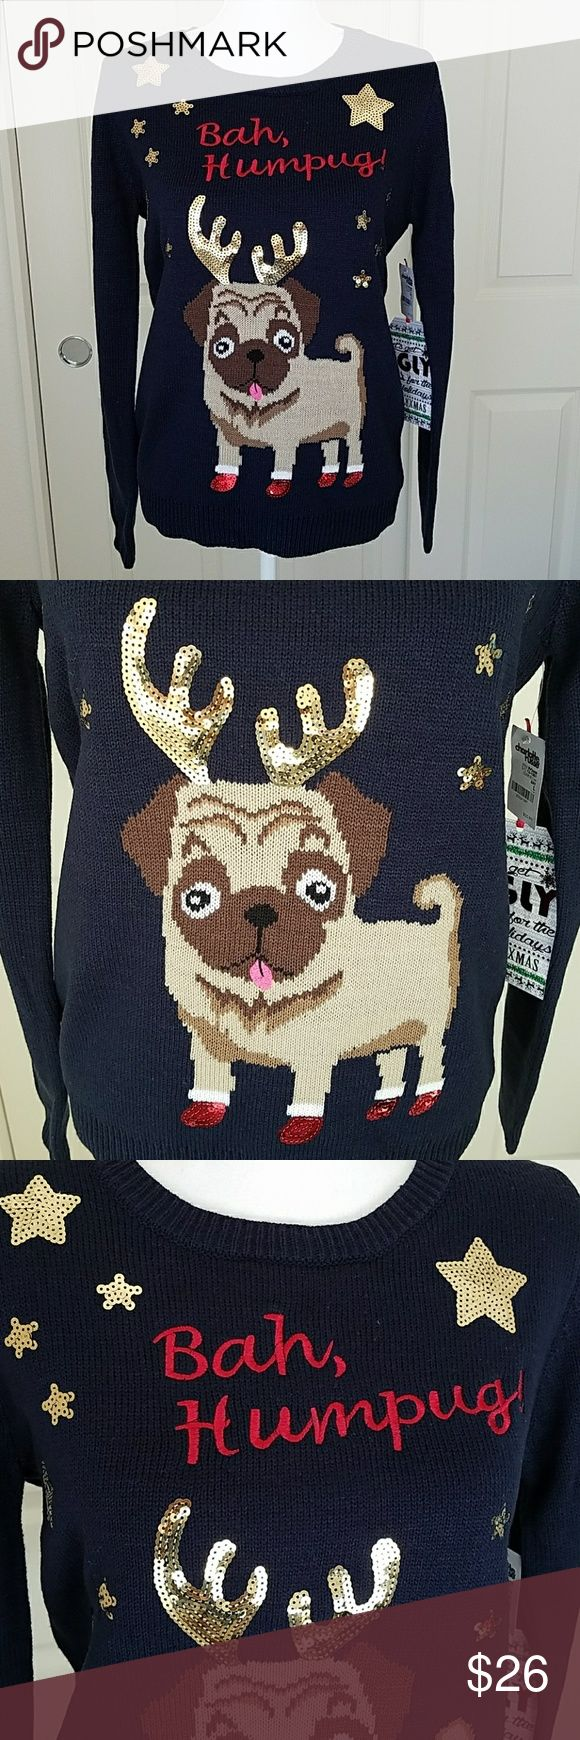 Bah, Humpug! Ugly Christmas Sweater Bah, Humpug! Ugly Christmas Sweater by Almost Famous x Charlotte Russe. Super cute pug Christmas Sweater with all sequins intact. New with tags. The tag says size large, however it fits my dress form perfectly. My dress form is size 6. I'm estimating that it may be a juniors large. Navy blue pull on sweater. Almost Famous Sweaters Crew & Scoop Necks